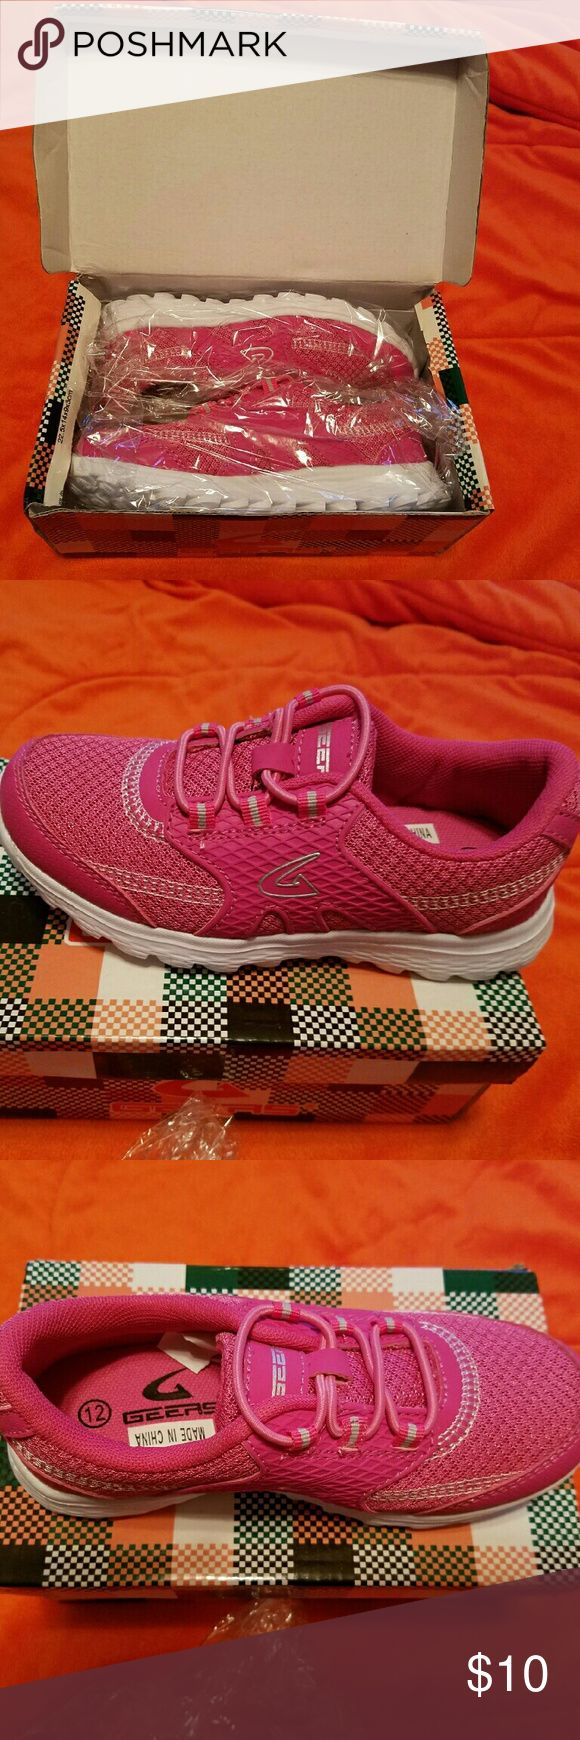 Pink girls tennis shoes Brand new, still in packaging, never worn pink Gears tennis shoes gears Shoes Sneakers